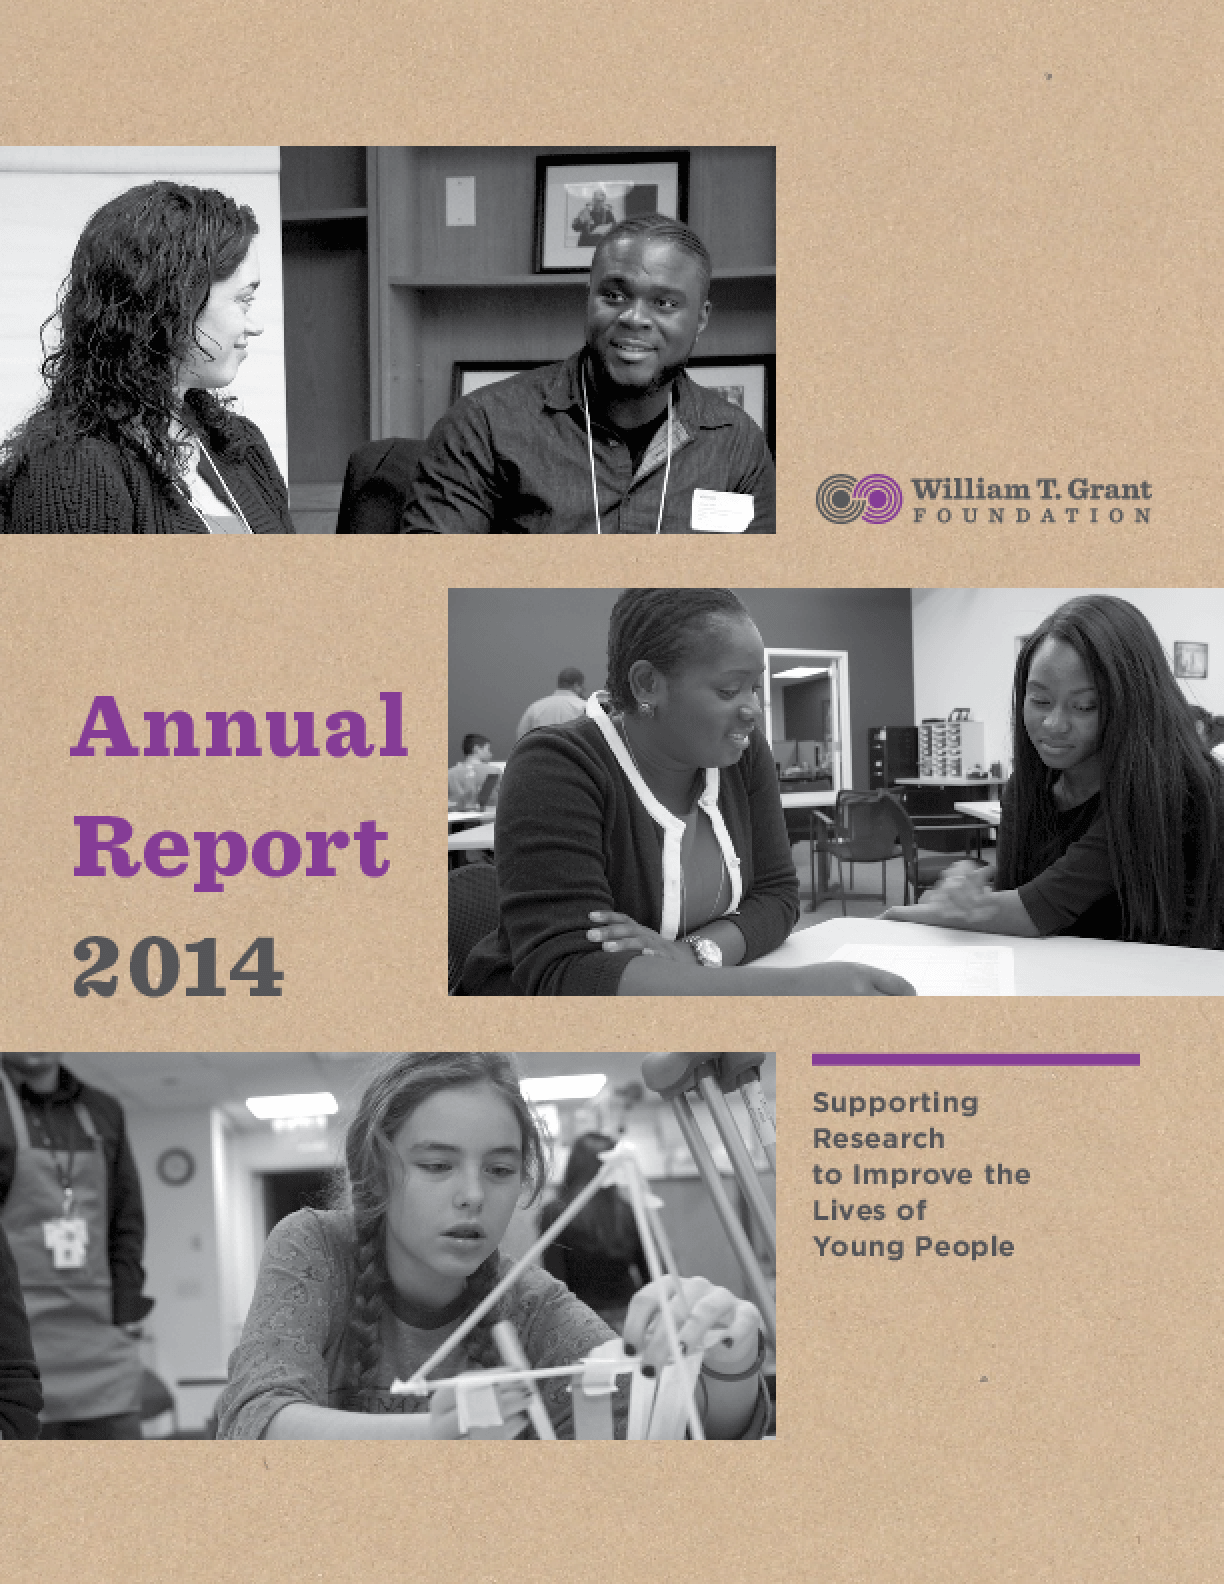 William T. Grant Foundation: Annual Report 2014